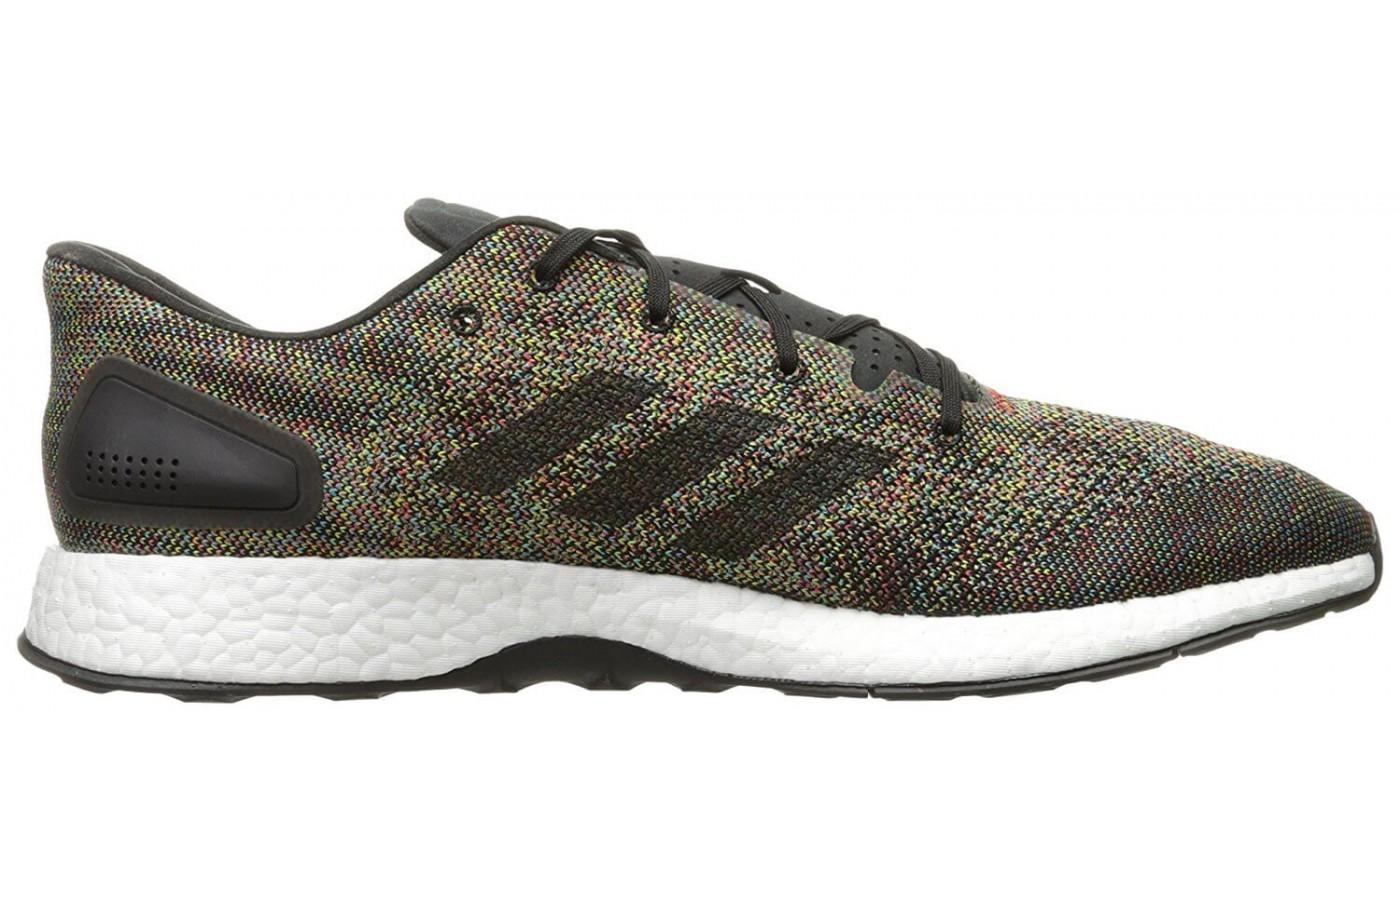 c46cf7dc6ff Adidas PureBOOST DPR LTD  Adidas PureBOOST DPR LTD is fashionable yet  functional ...